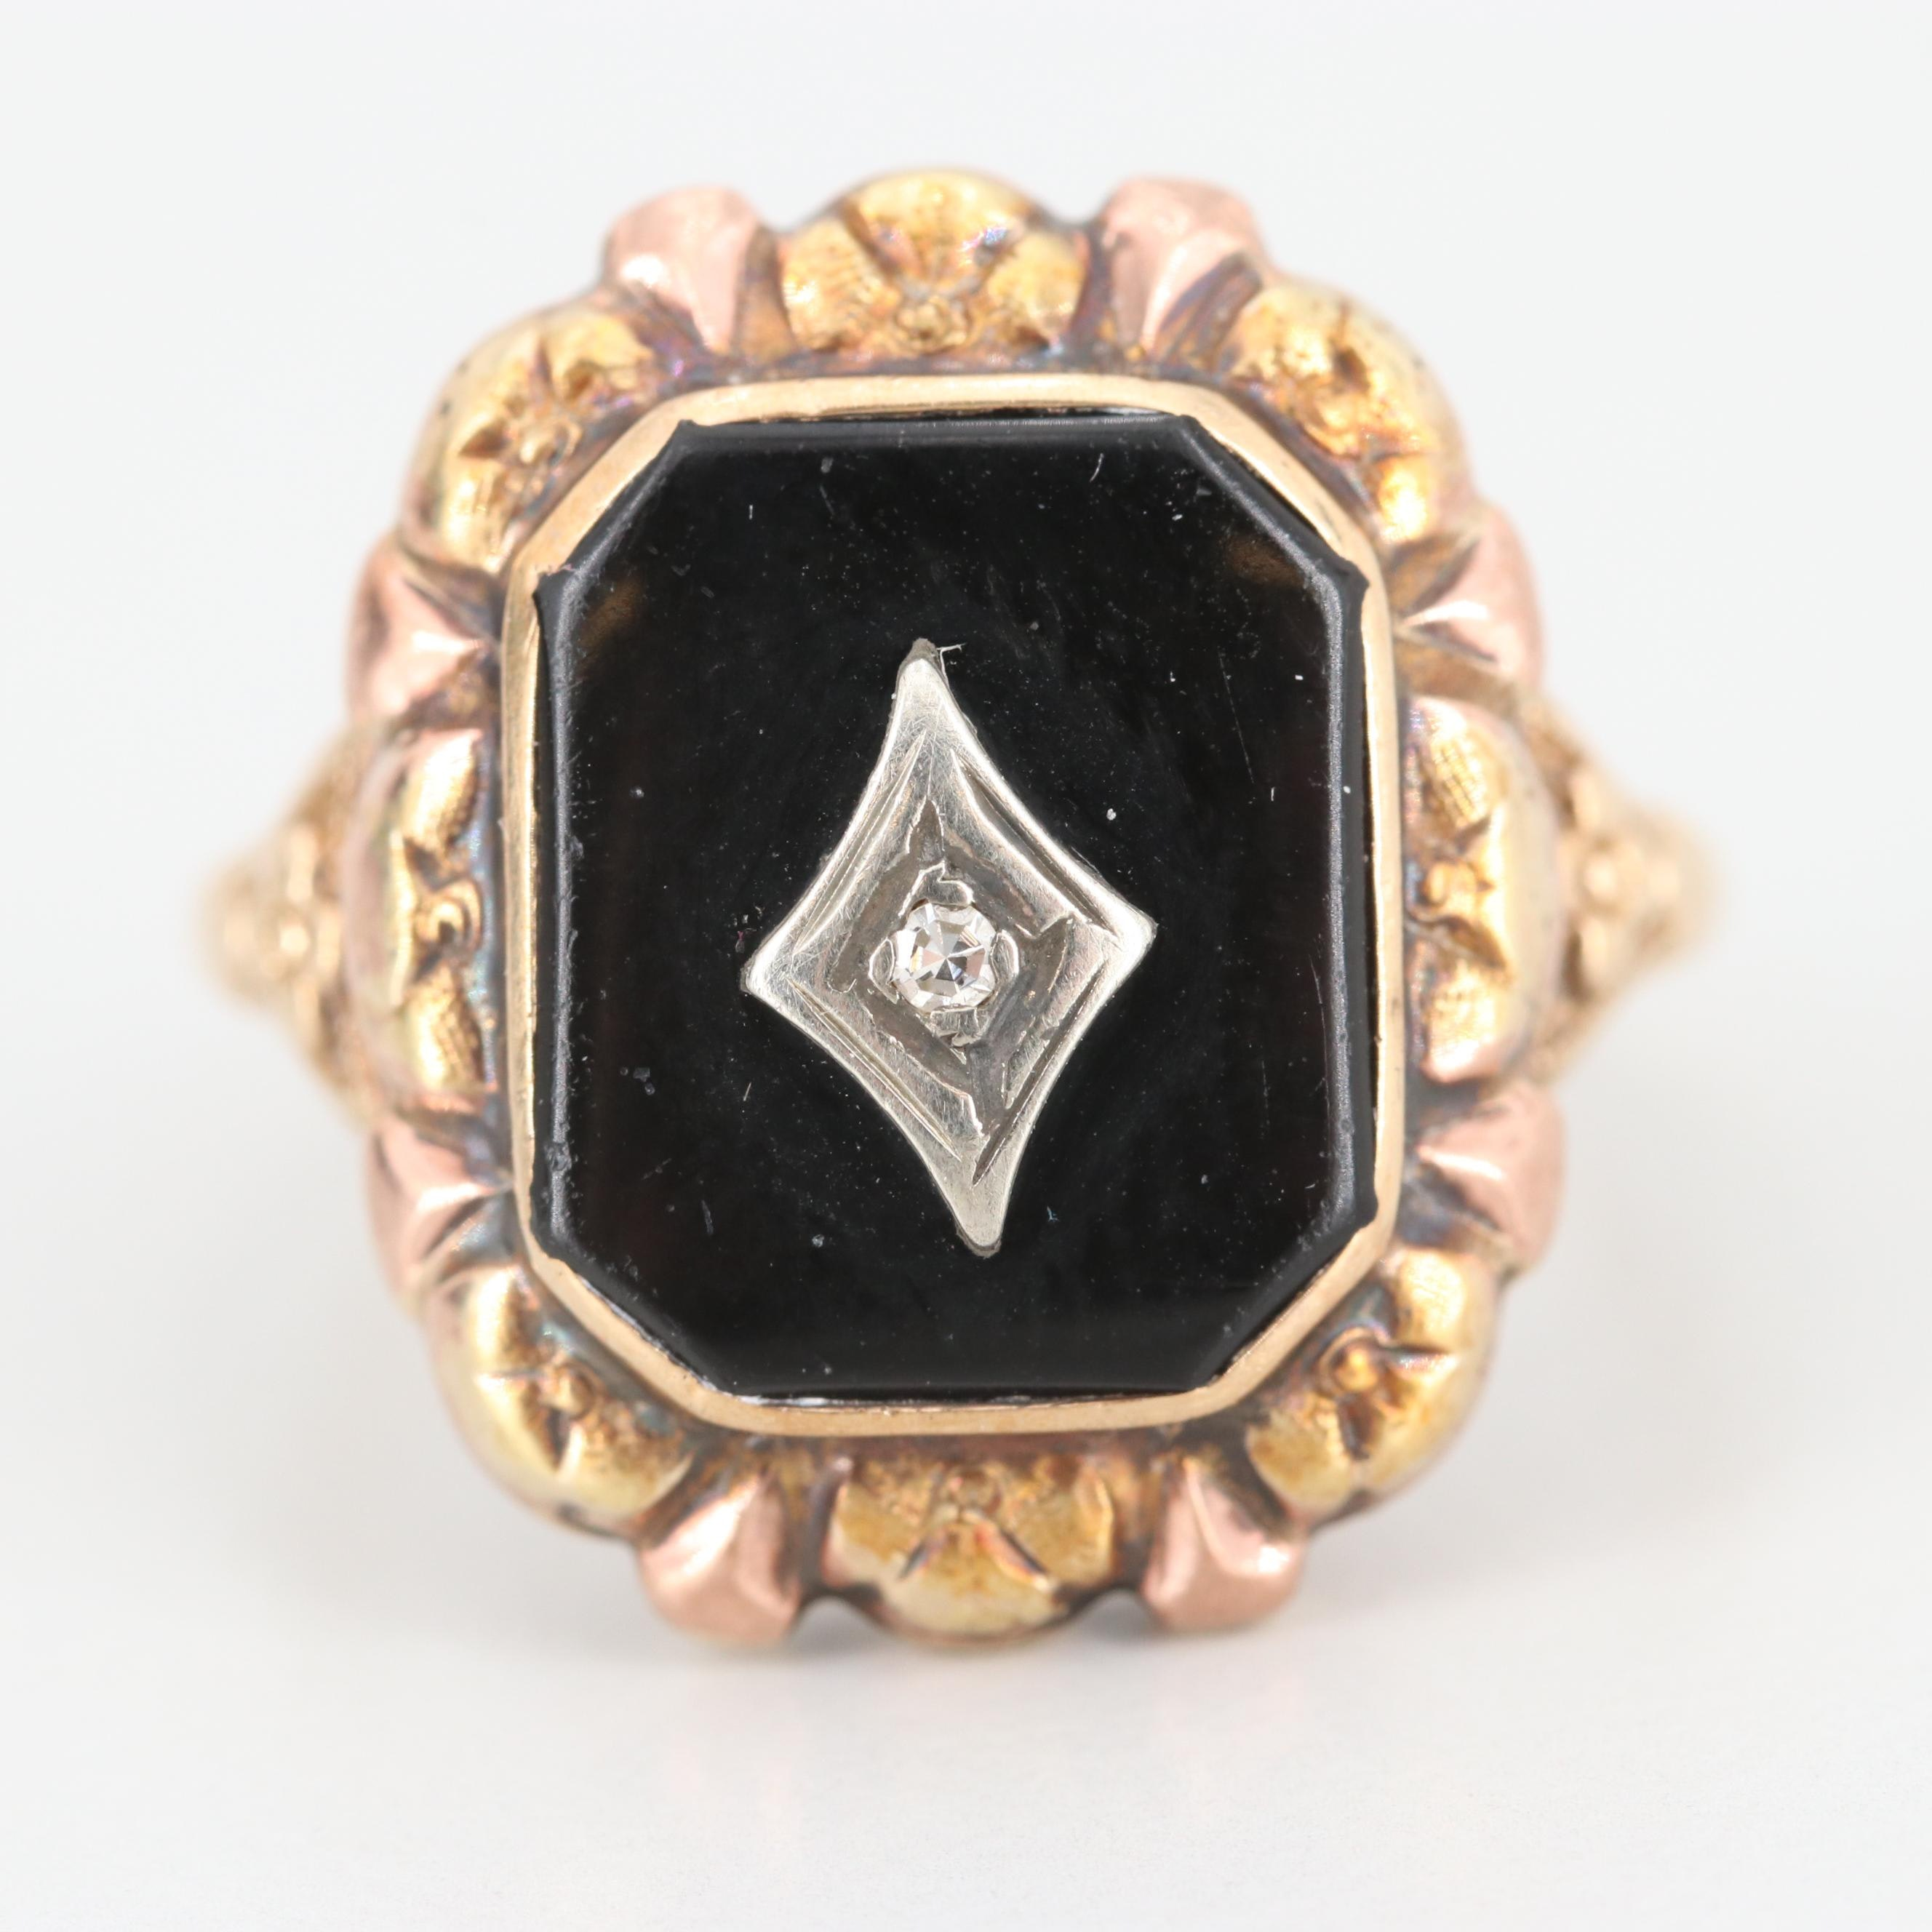 Vintage 10K Yellow Gold Black Onyx and Diamond Ring